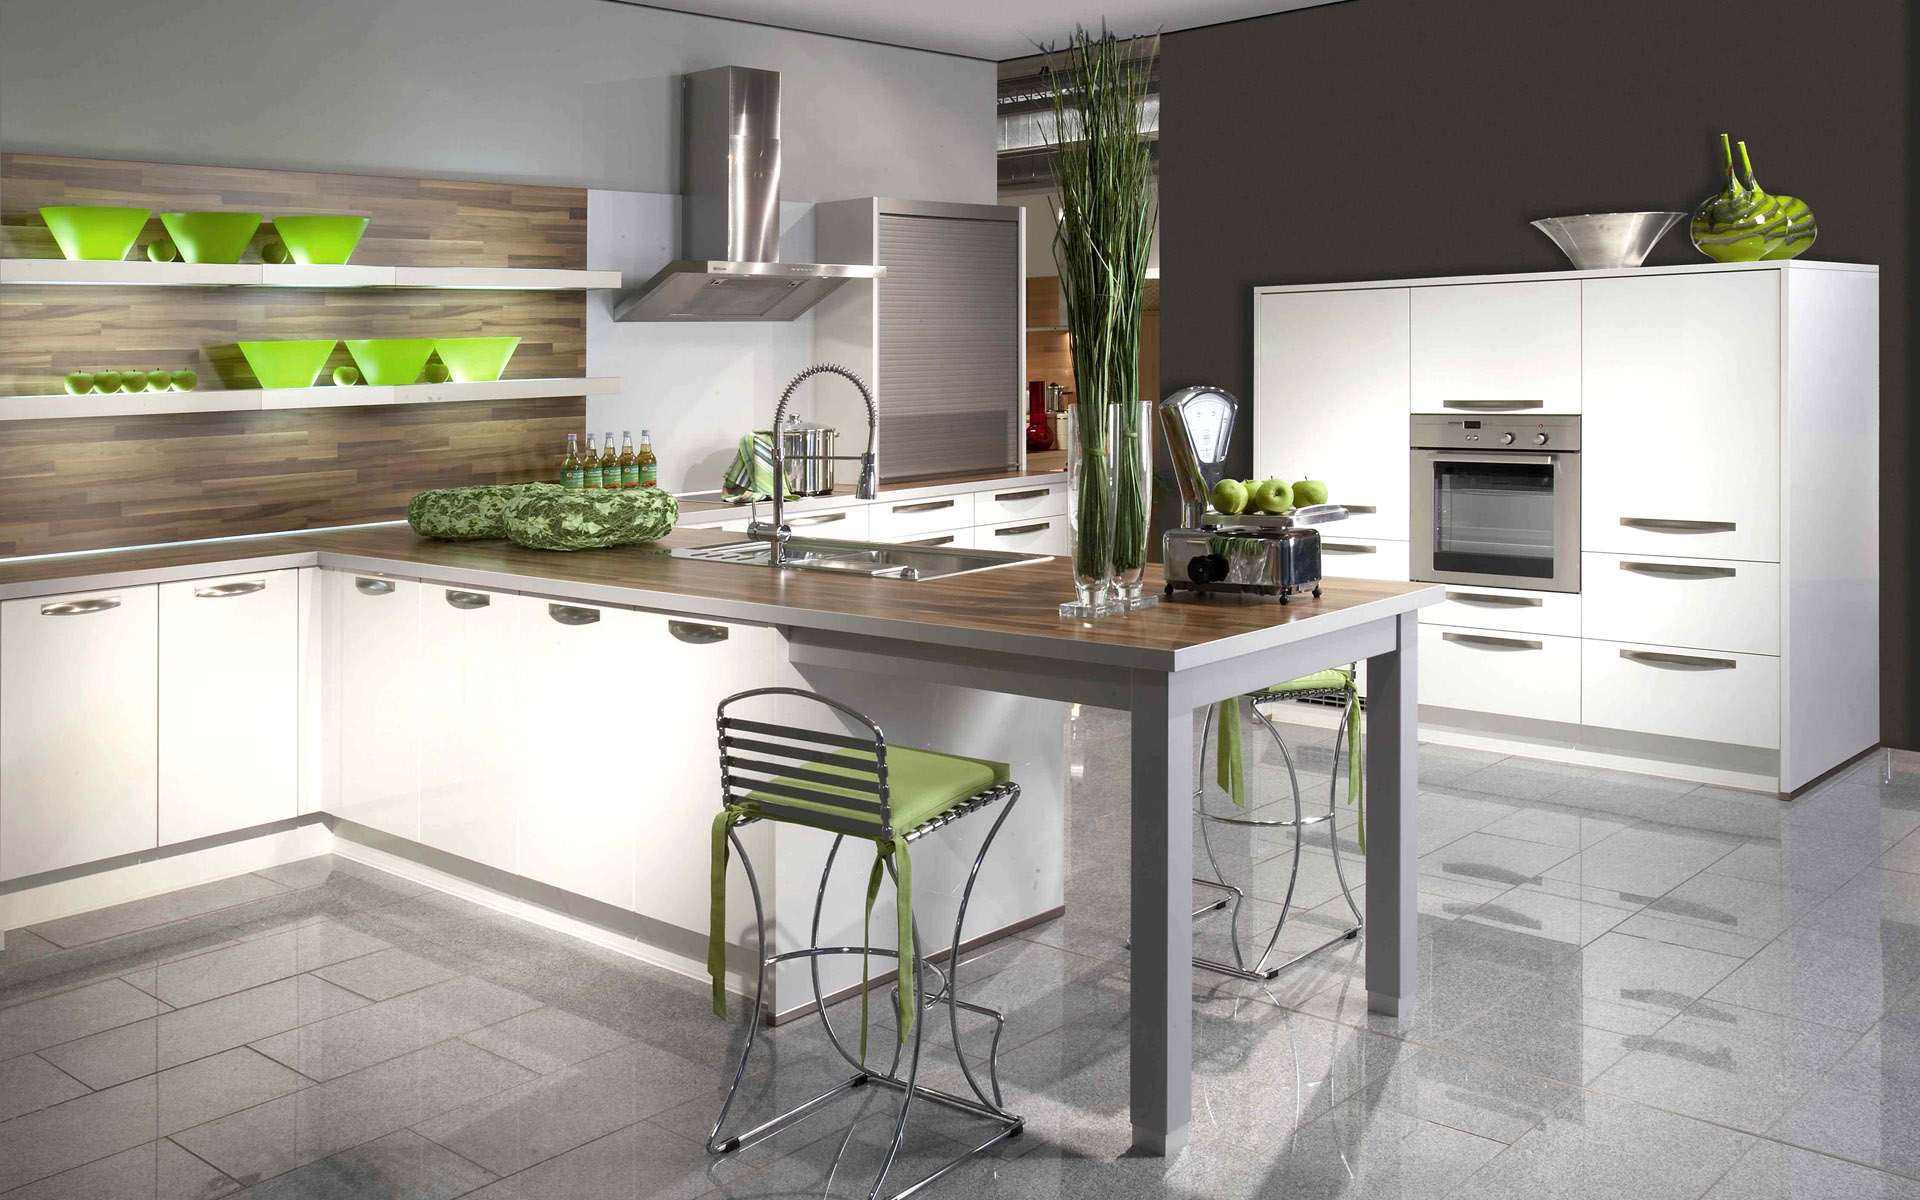 Green white and gray kitchen idea interior design ideas for Grey and green kitchen